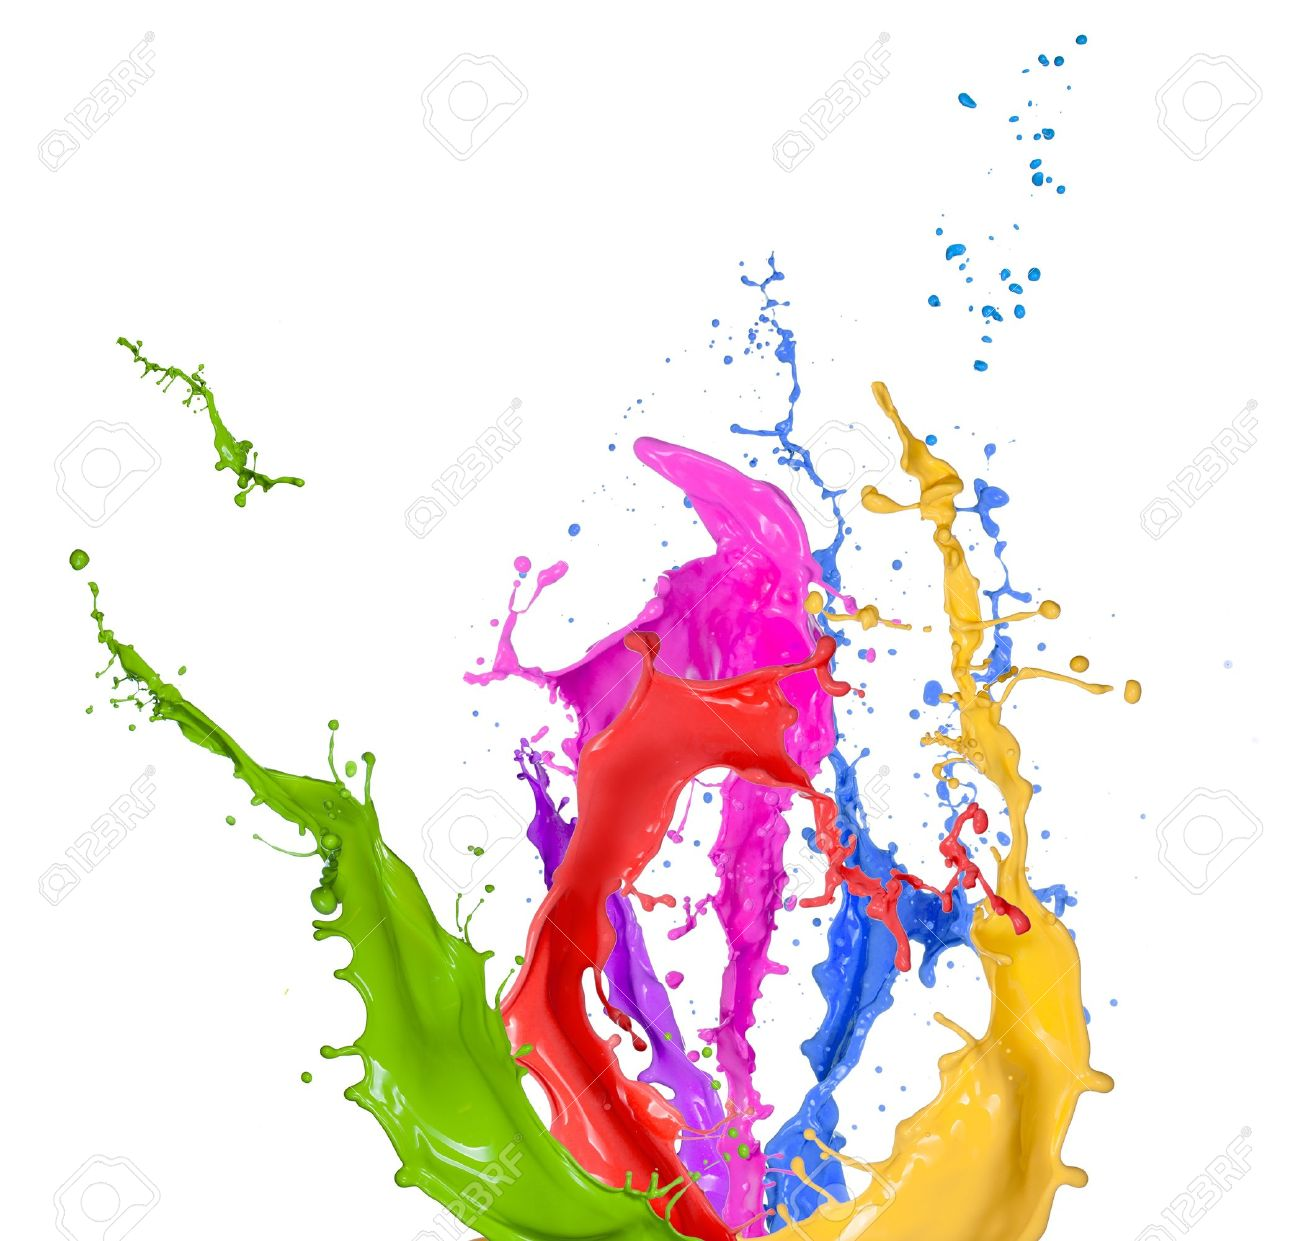 Colored Splashes In Abstract Shape Isolated On White Background 1300x1241